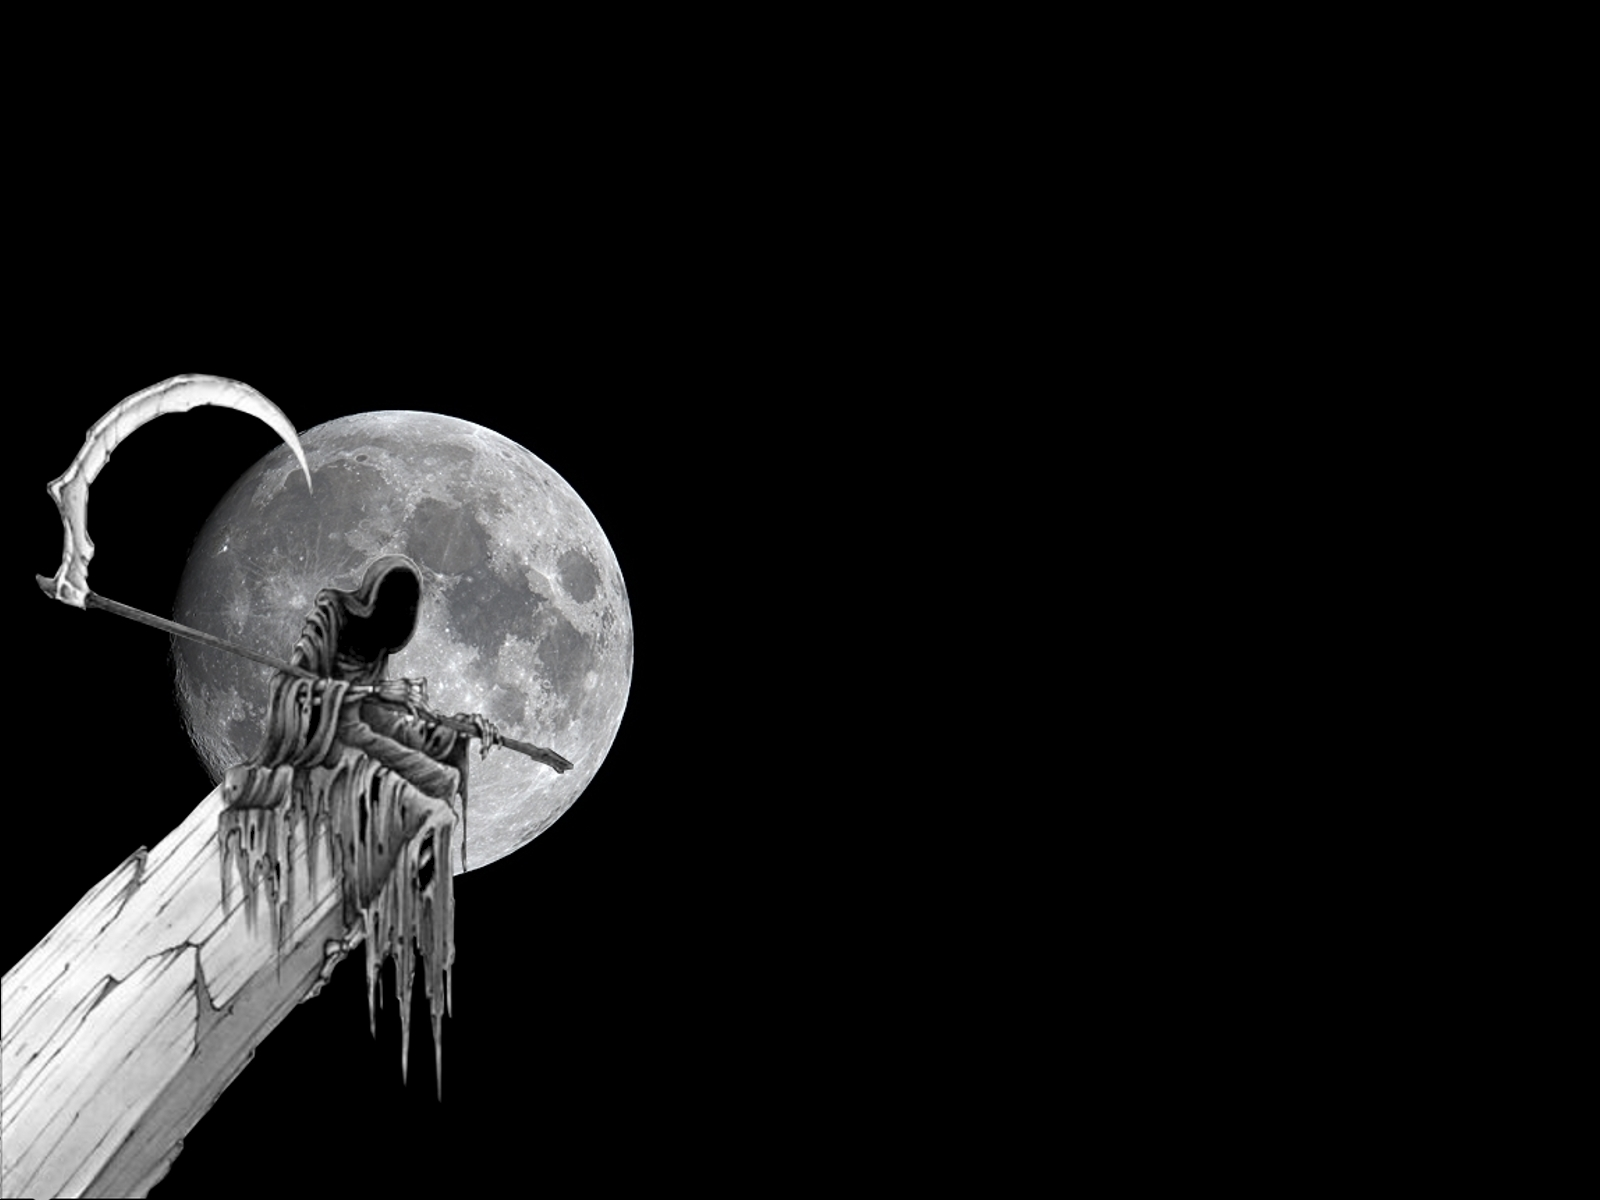 the grim reaper images Grim Reaper HD wallpaper and background